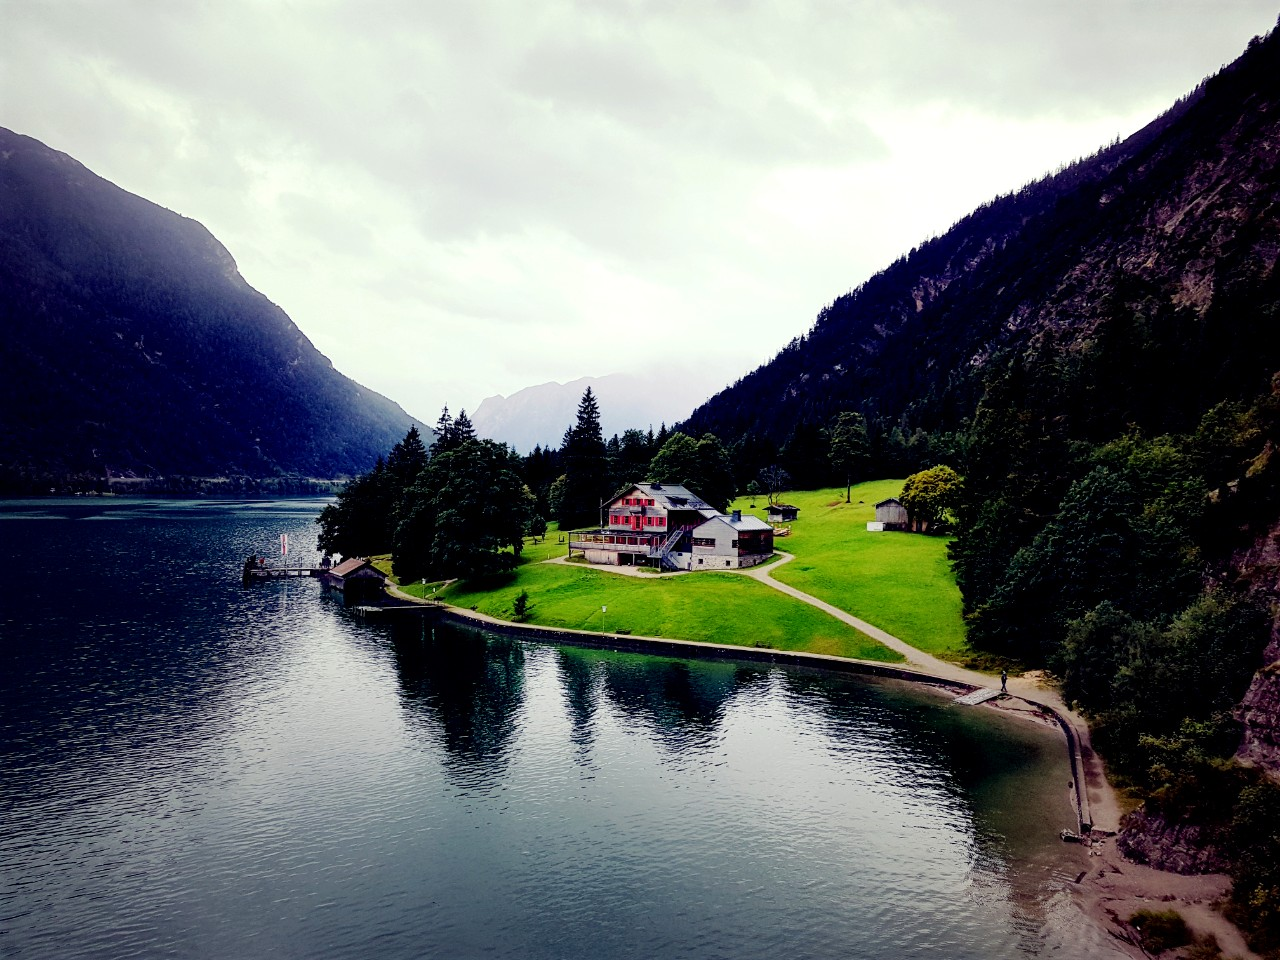 """Lake Achen is the largest Alpine lake in the Austrian Tyrol, and sometimes called the """"Fjord of the Alps""""."""